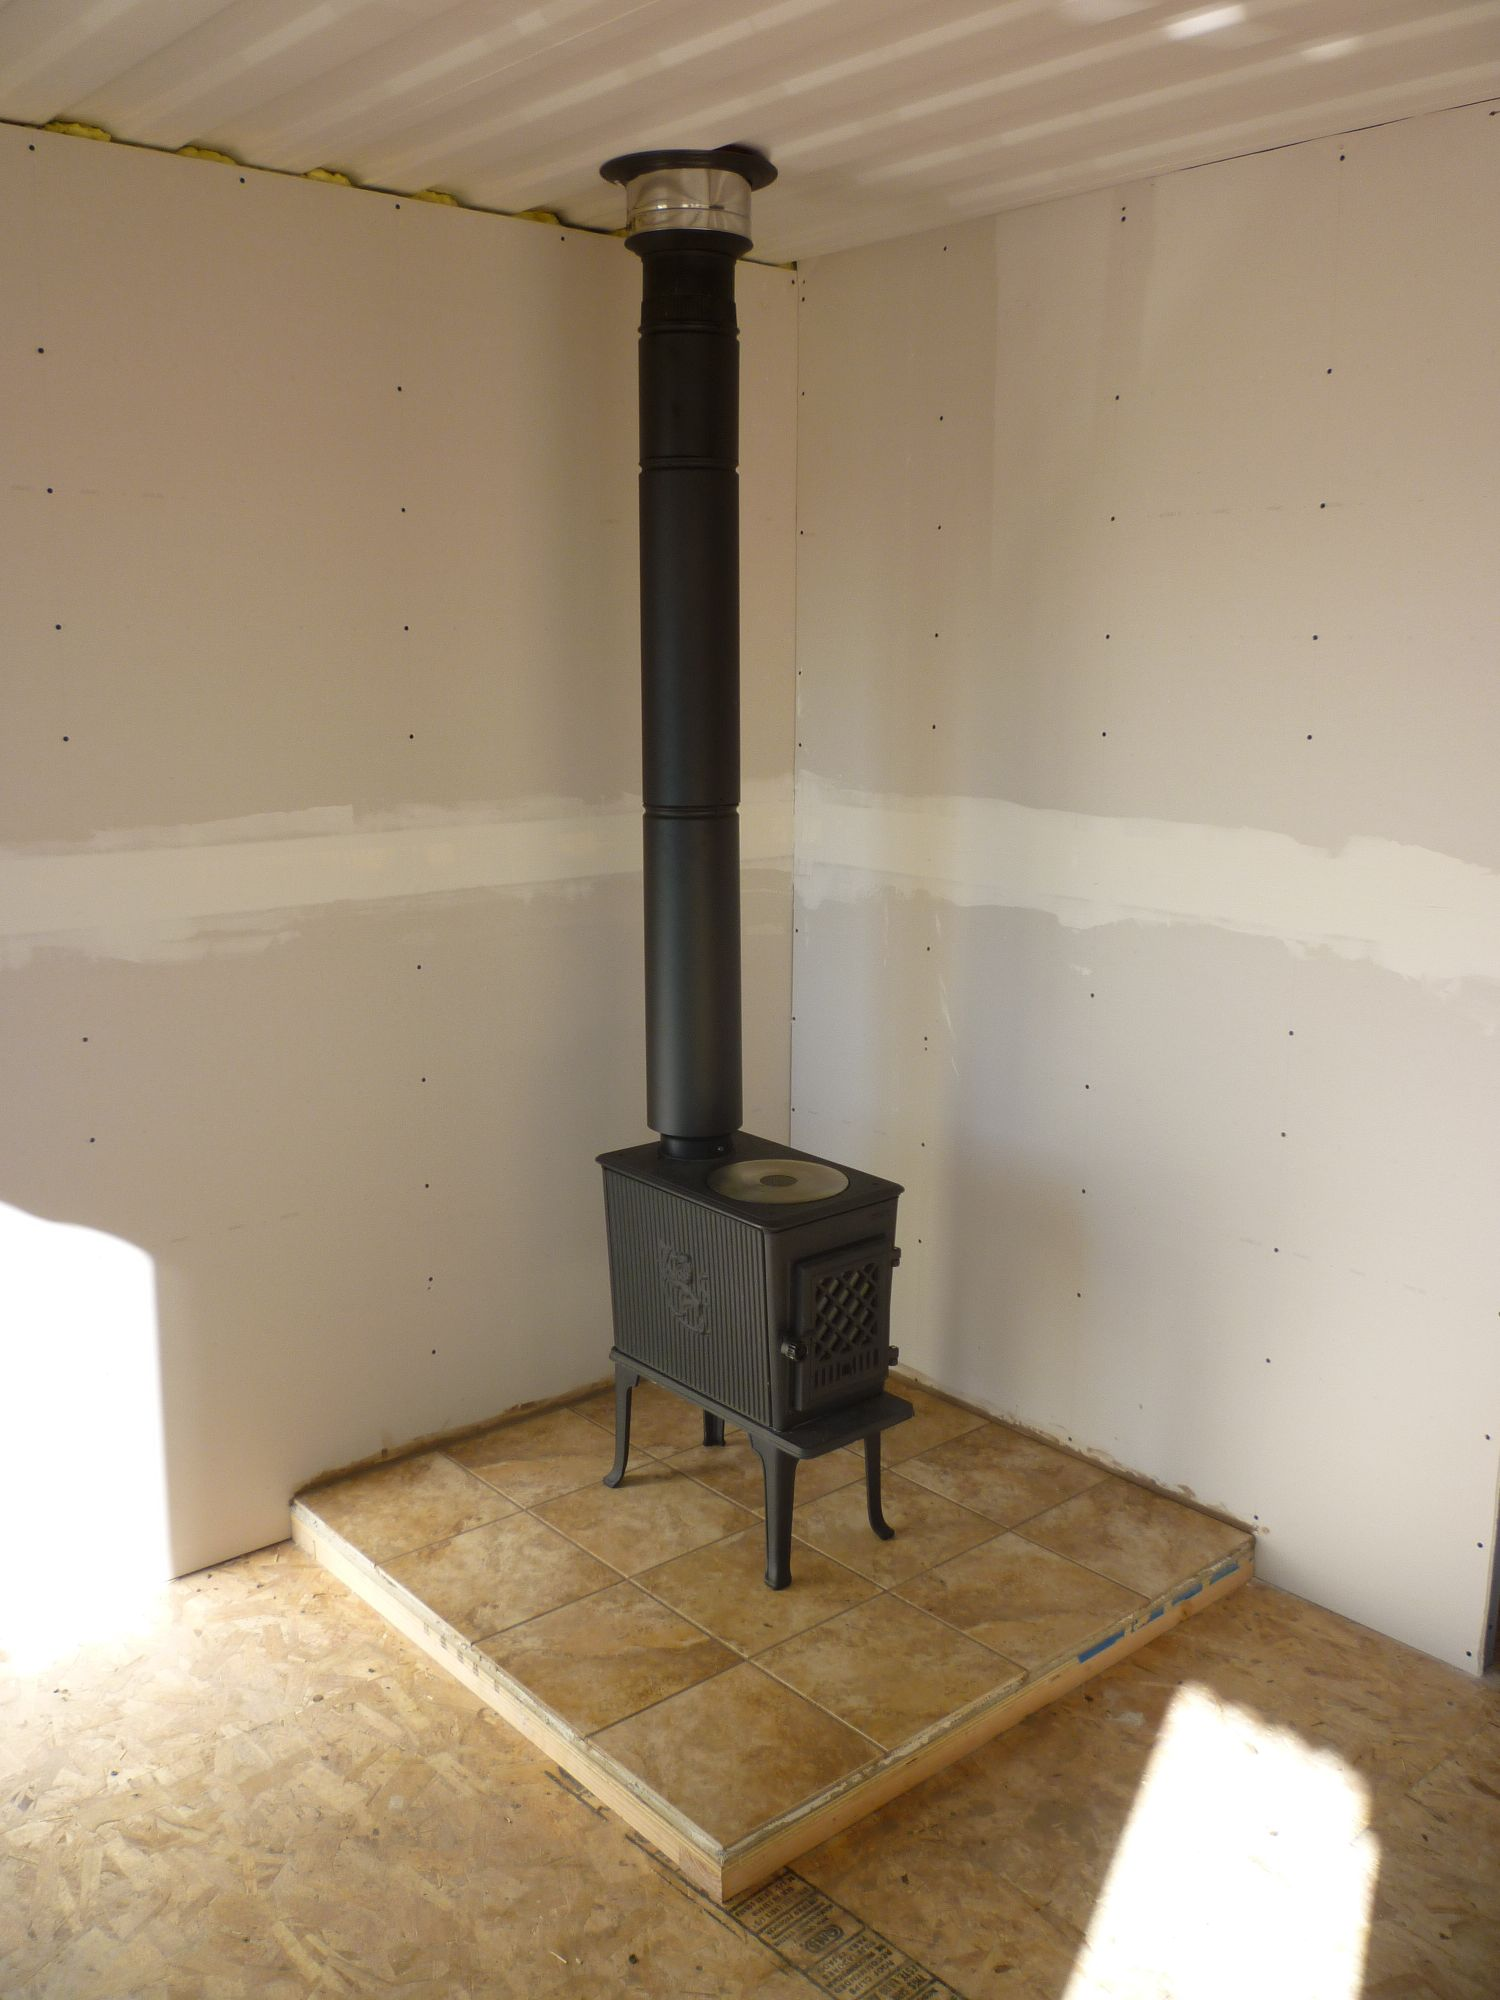 Stove Chimney Installing Wood Stove Chimney Through Roof. fire masters gas  fireplaces - Fireplace Chimney Pipe